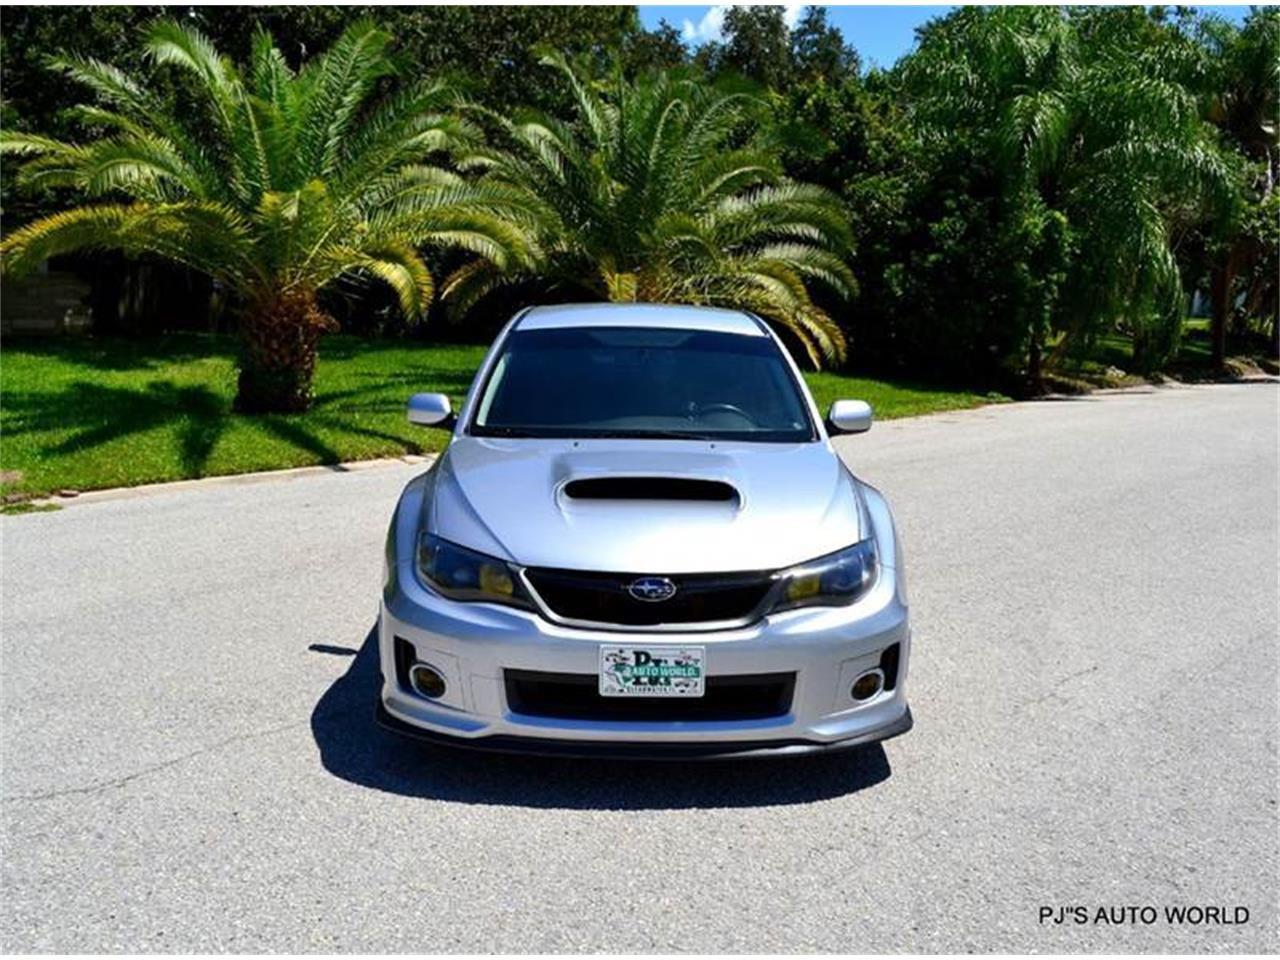 Large Picture of 2013 Impreza located in Clearwater Florida - $19,900.00 Offered by PJ's Auto World - J6WM